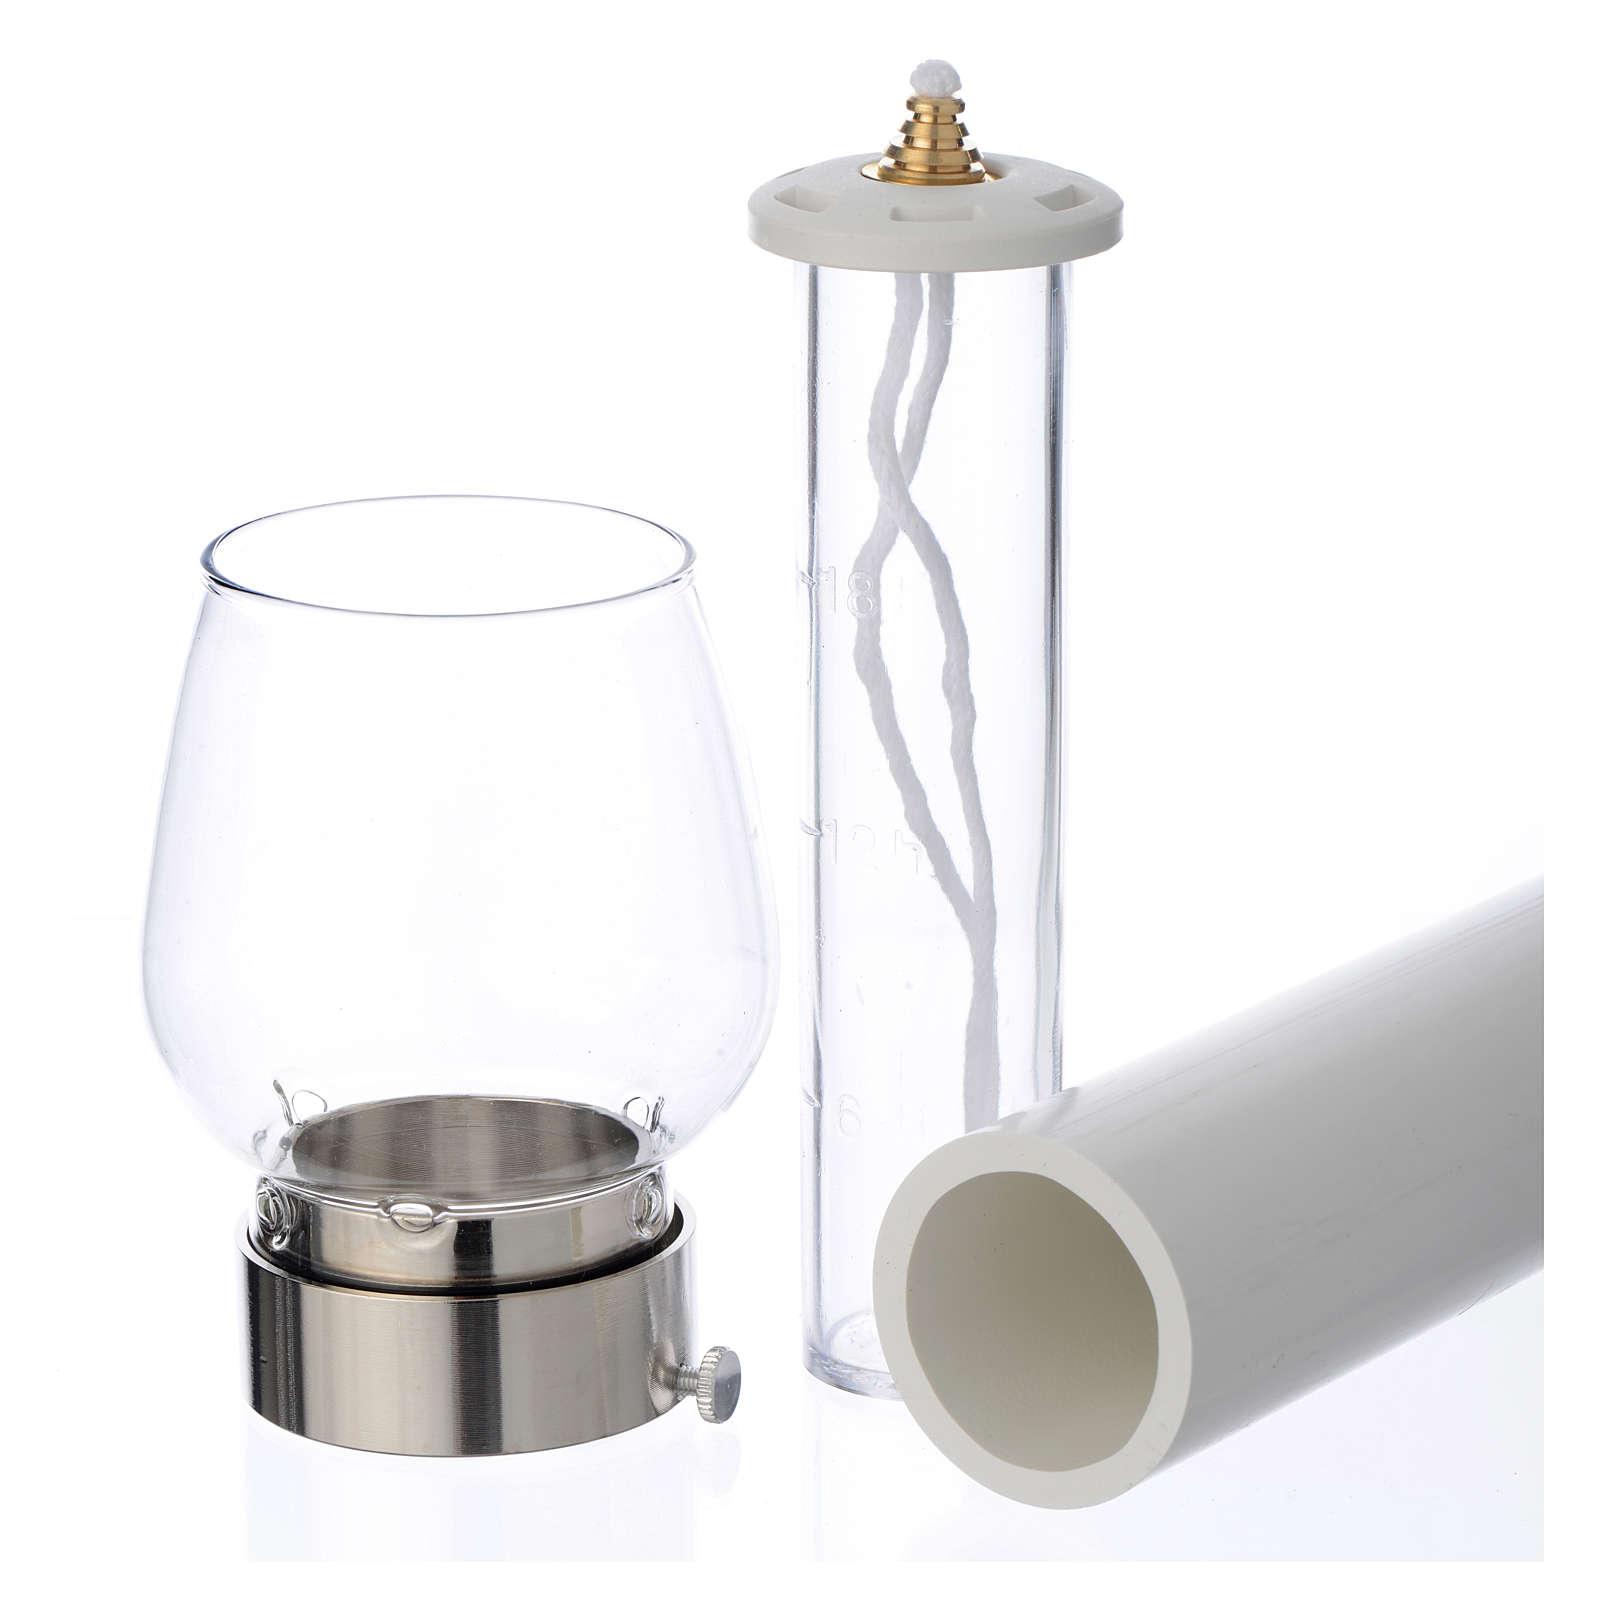 Wind-proof Candle Follower, 30 cm tall with silver base, 4cm diameter 3